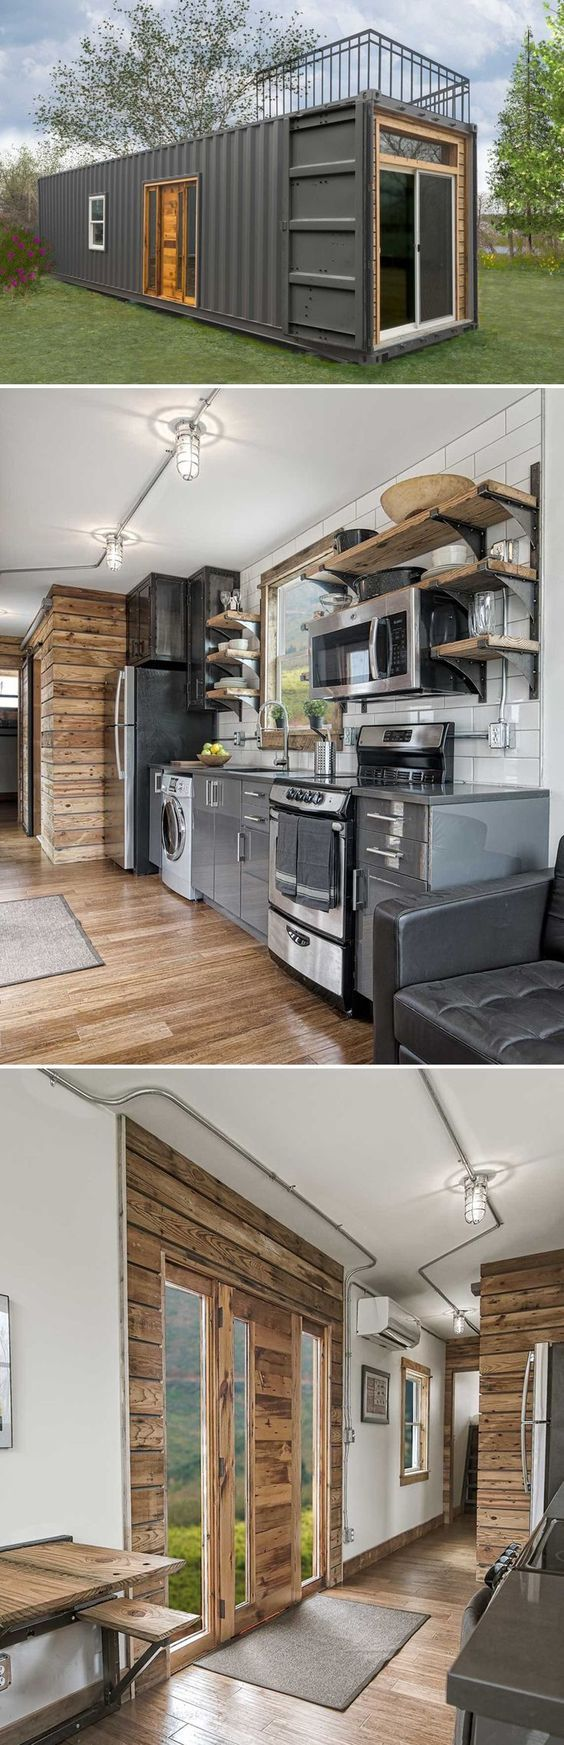 Milford, MI-based Minimalist Homes built the Freedom shipping container house using a minimalist industrial theme to reduce its impact on the environment.